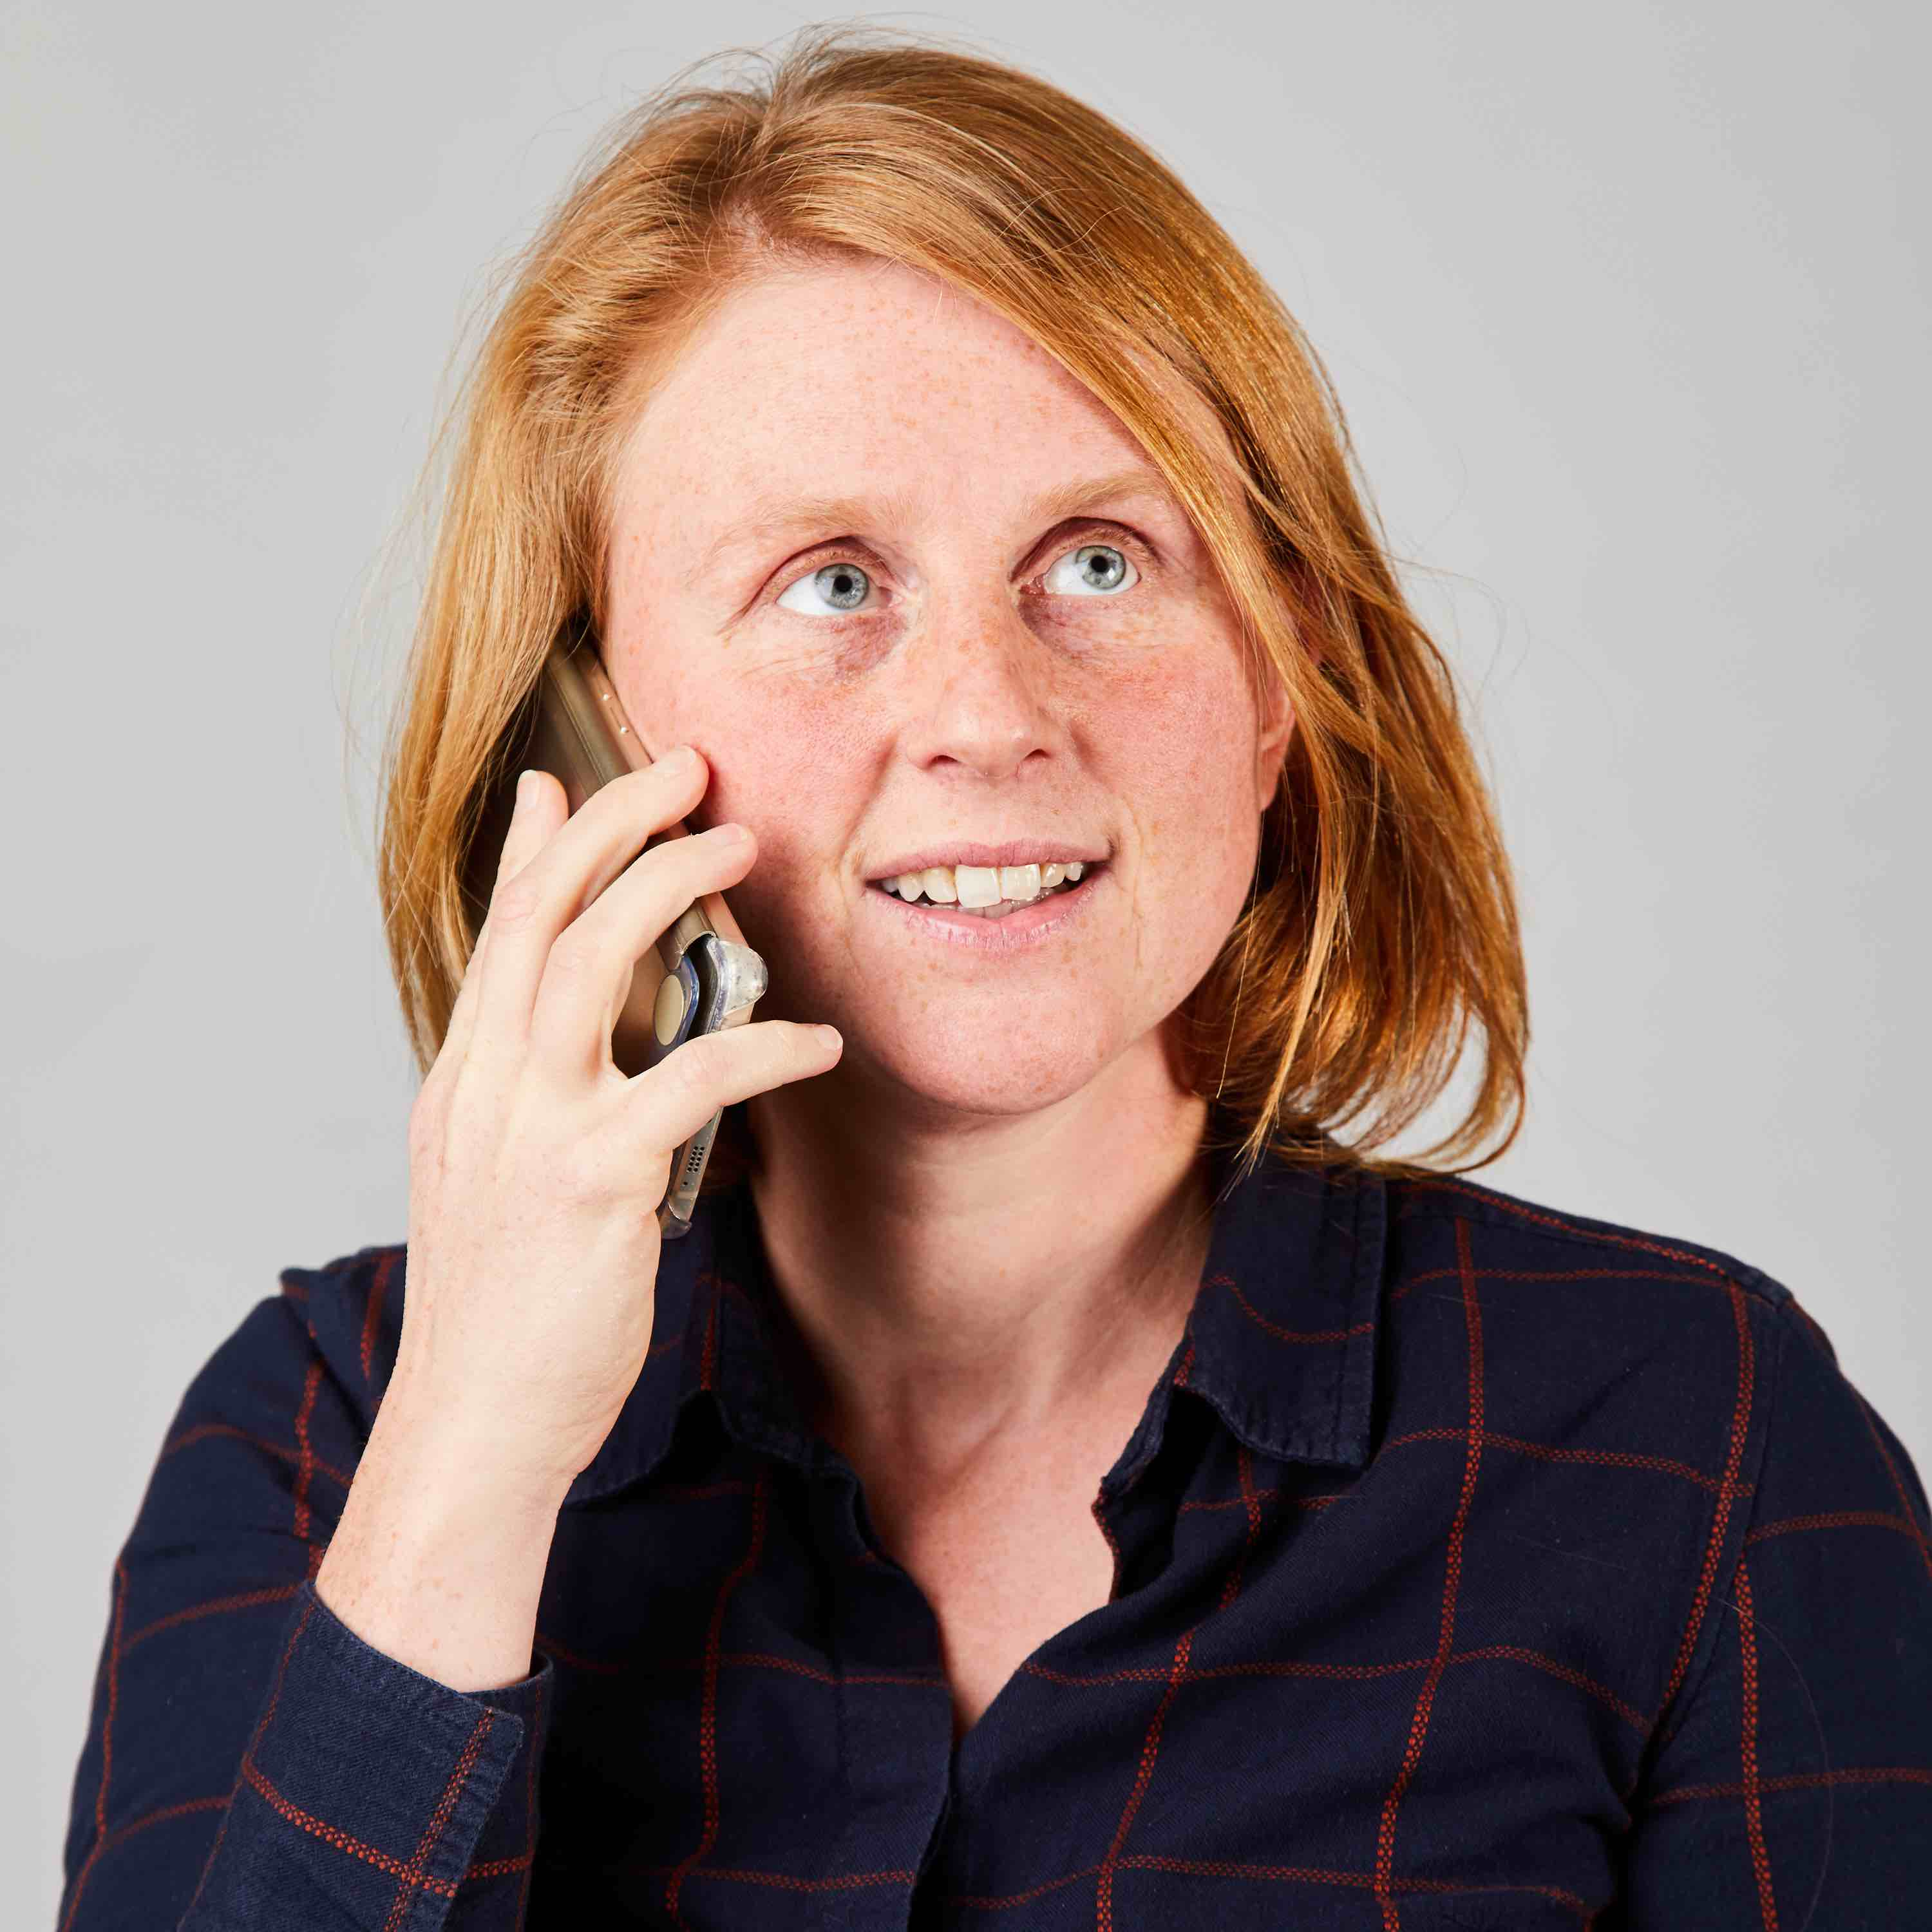 picture of sara verlinde - senior researcher at mobi